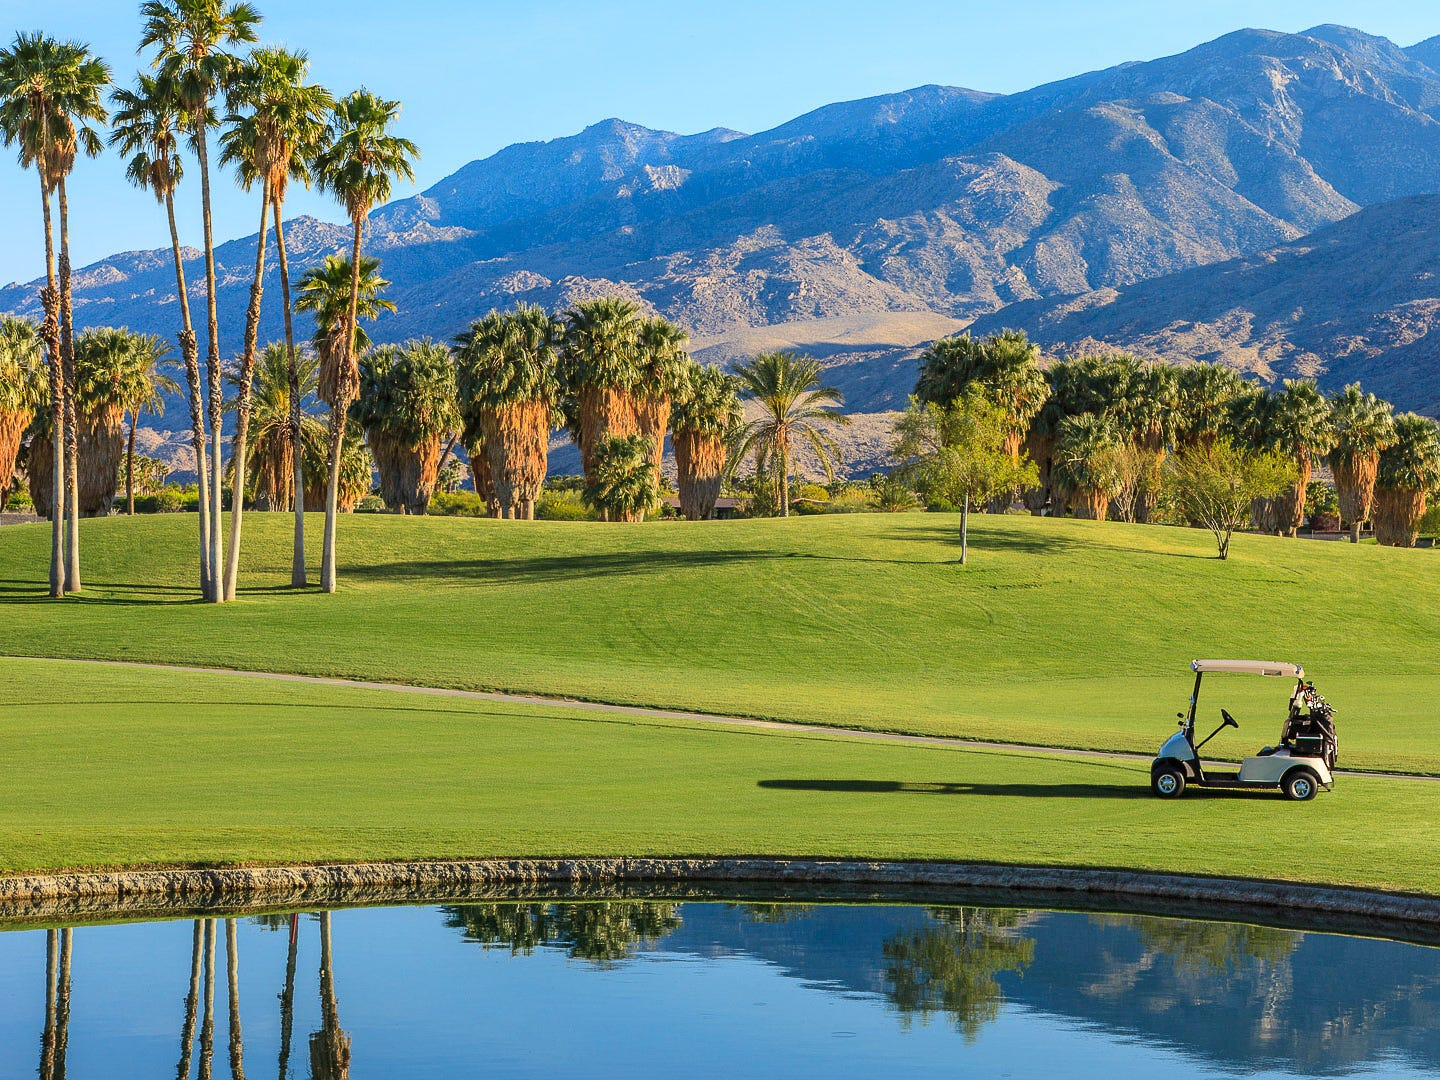 No. 15: Palm Springs, California. Thanksgiving trip cost: $1,123.50. Christmas trip cost: $1,200.50. Flights to Palm Springs can bust your budget if you travel during Christmas. The average cost of round-trip flights to get to this desert retreat during the holidays is $404.50 — the fifth-highest flight cost compared to other destinations included in this study. However, if you want to spend Christmas in Palm Springs on a regular basis, it might be worth investing in a property there. It's one of the best places to get a vacation home.